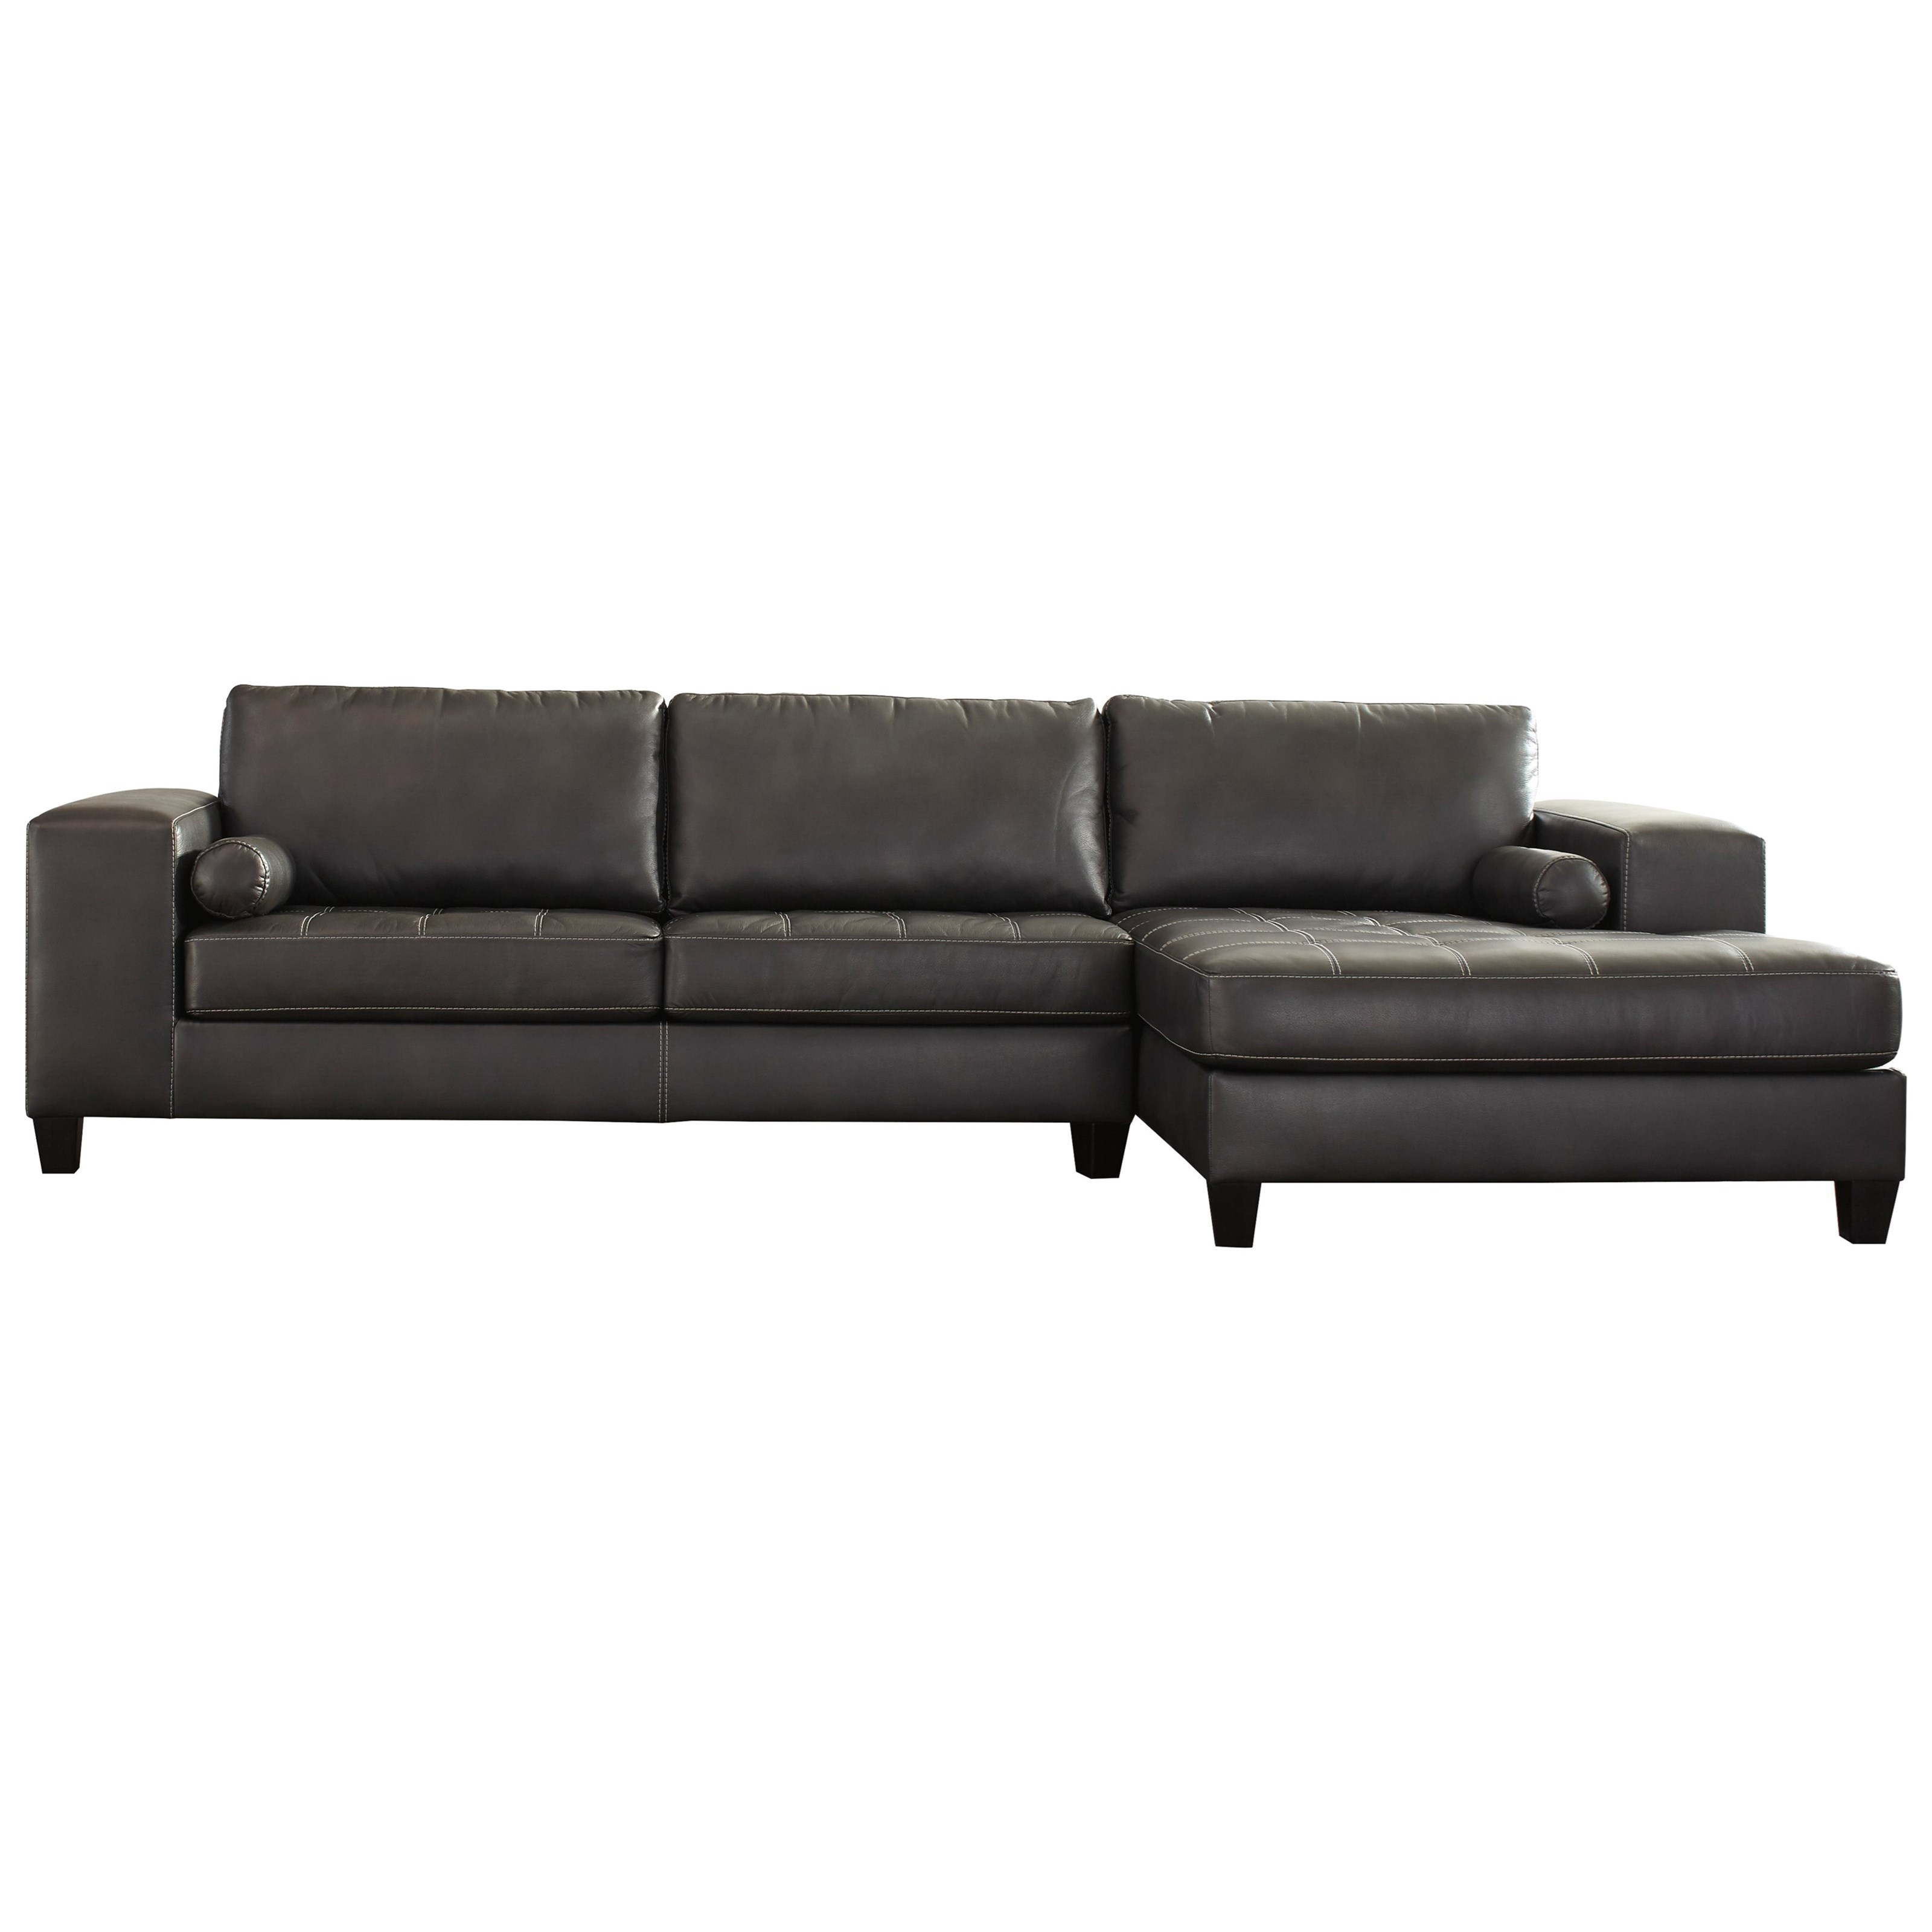 Ashley Signature Design Nokomis Contemporary Faux Leather Sectional with Right Chaise - Dunk u0026 Bright Furniture - Sectional Sofas  sc 1 st  Dunk u0026 Bright Furniture : faux leather sectional - Sectionals, Sofas & Couches